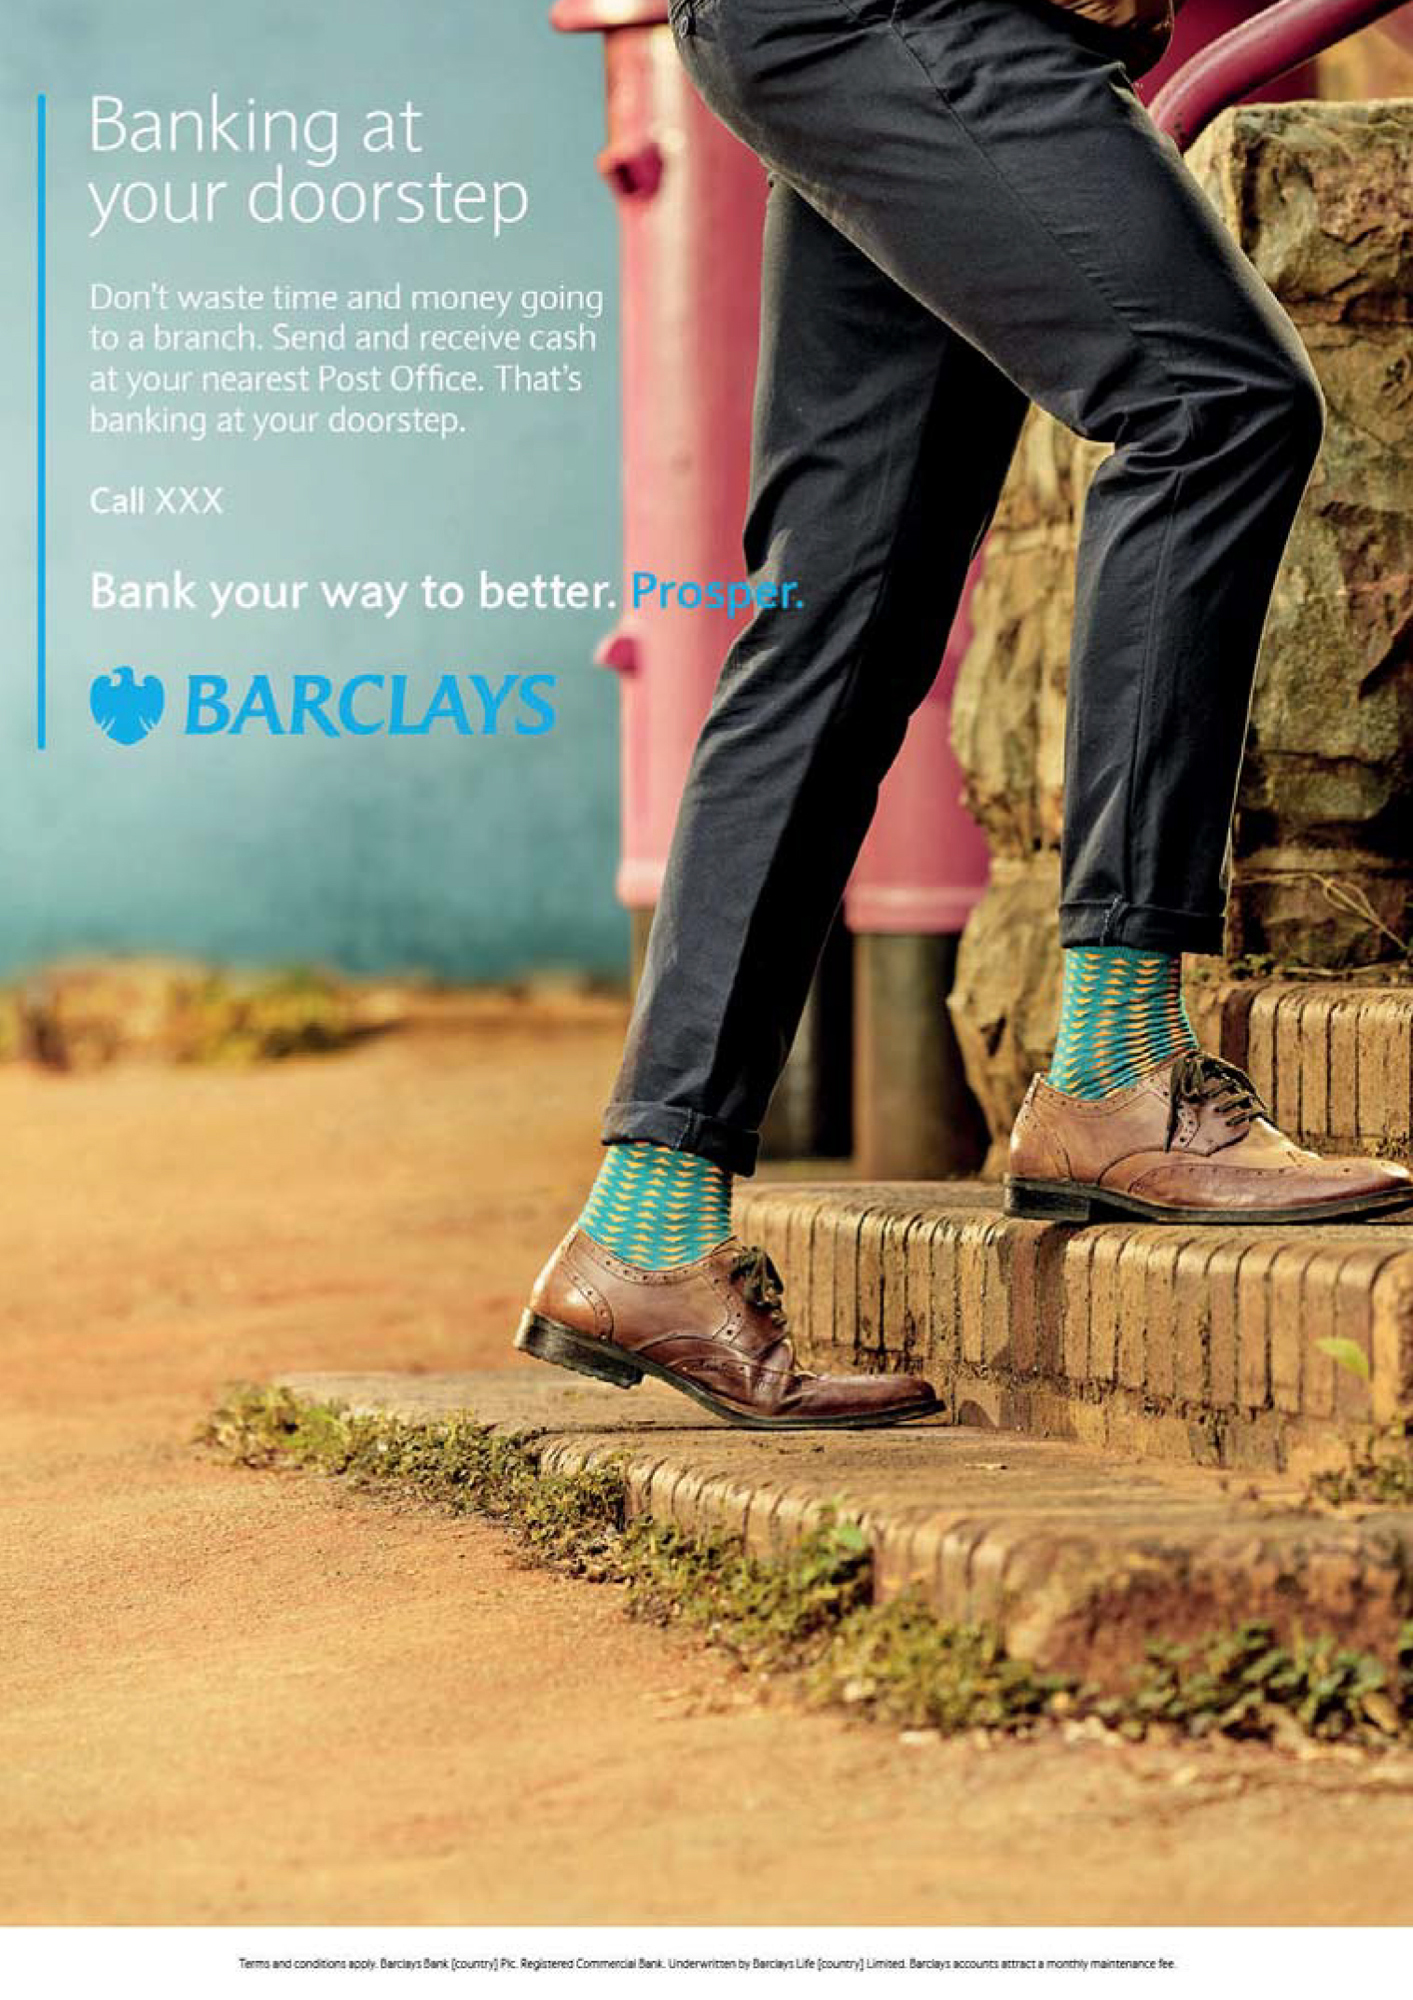 Barclays Personal Banking Campaign Toolkit 26 APRIL-101.jpg